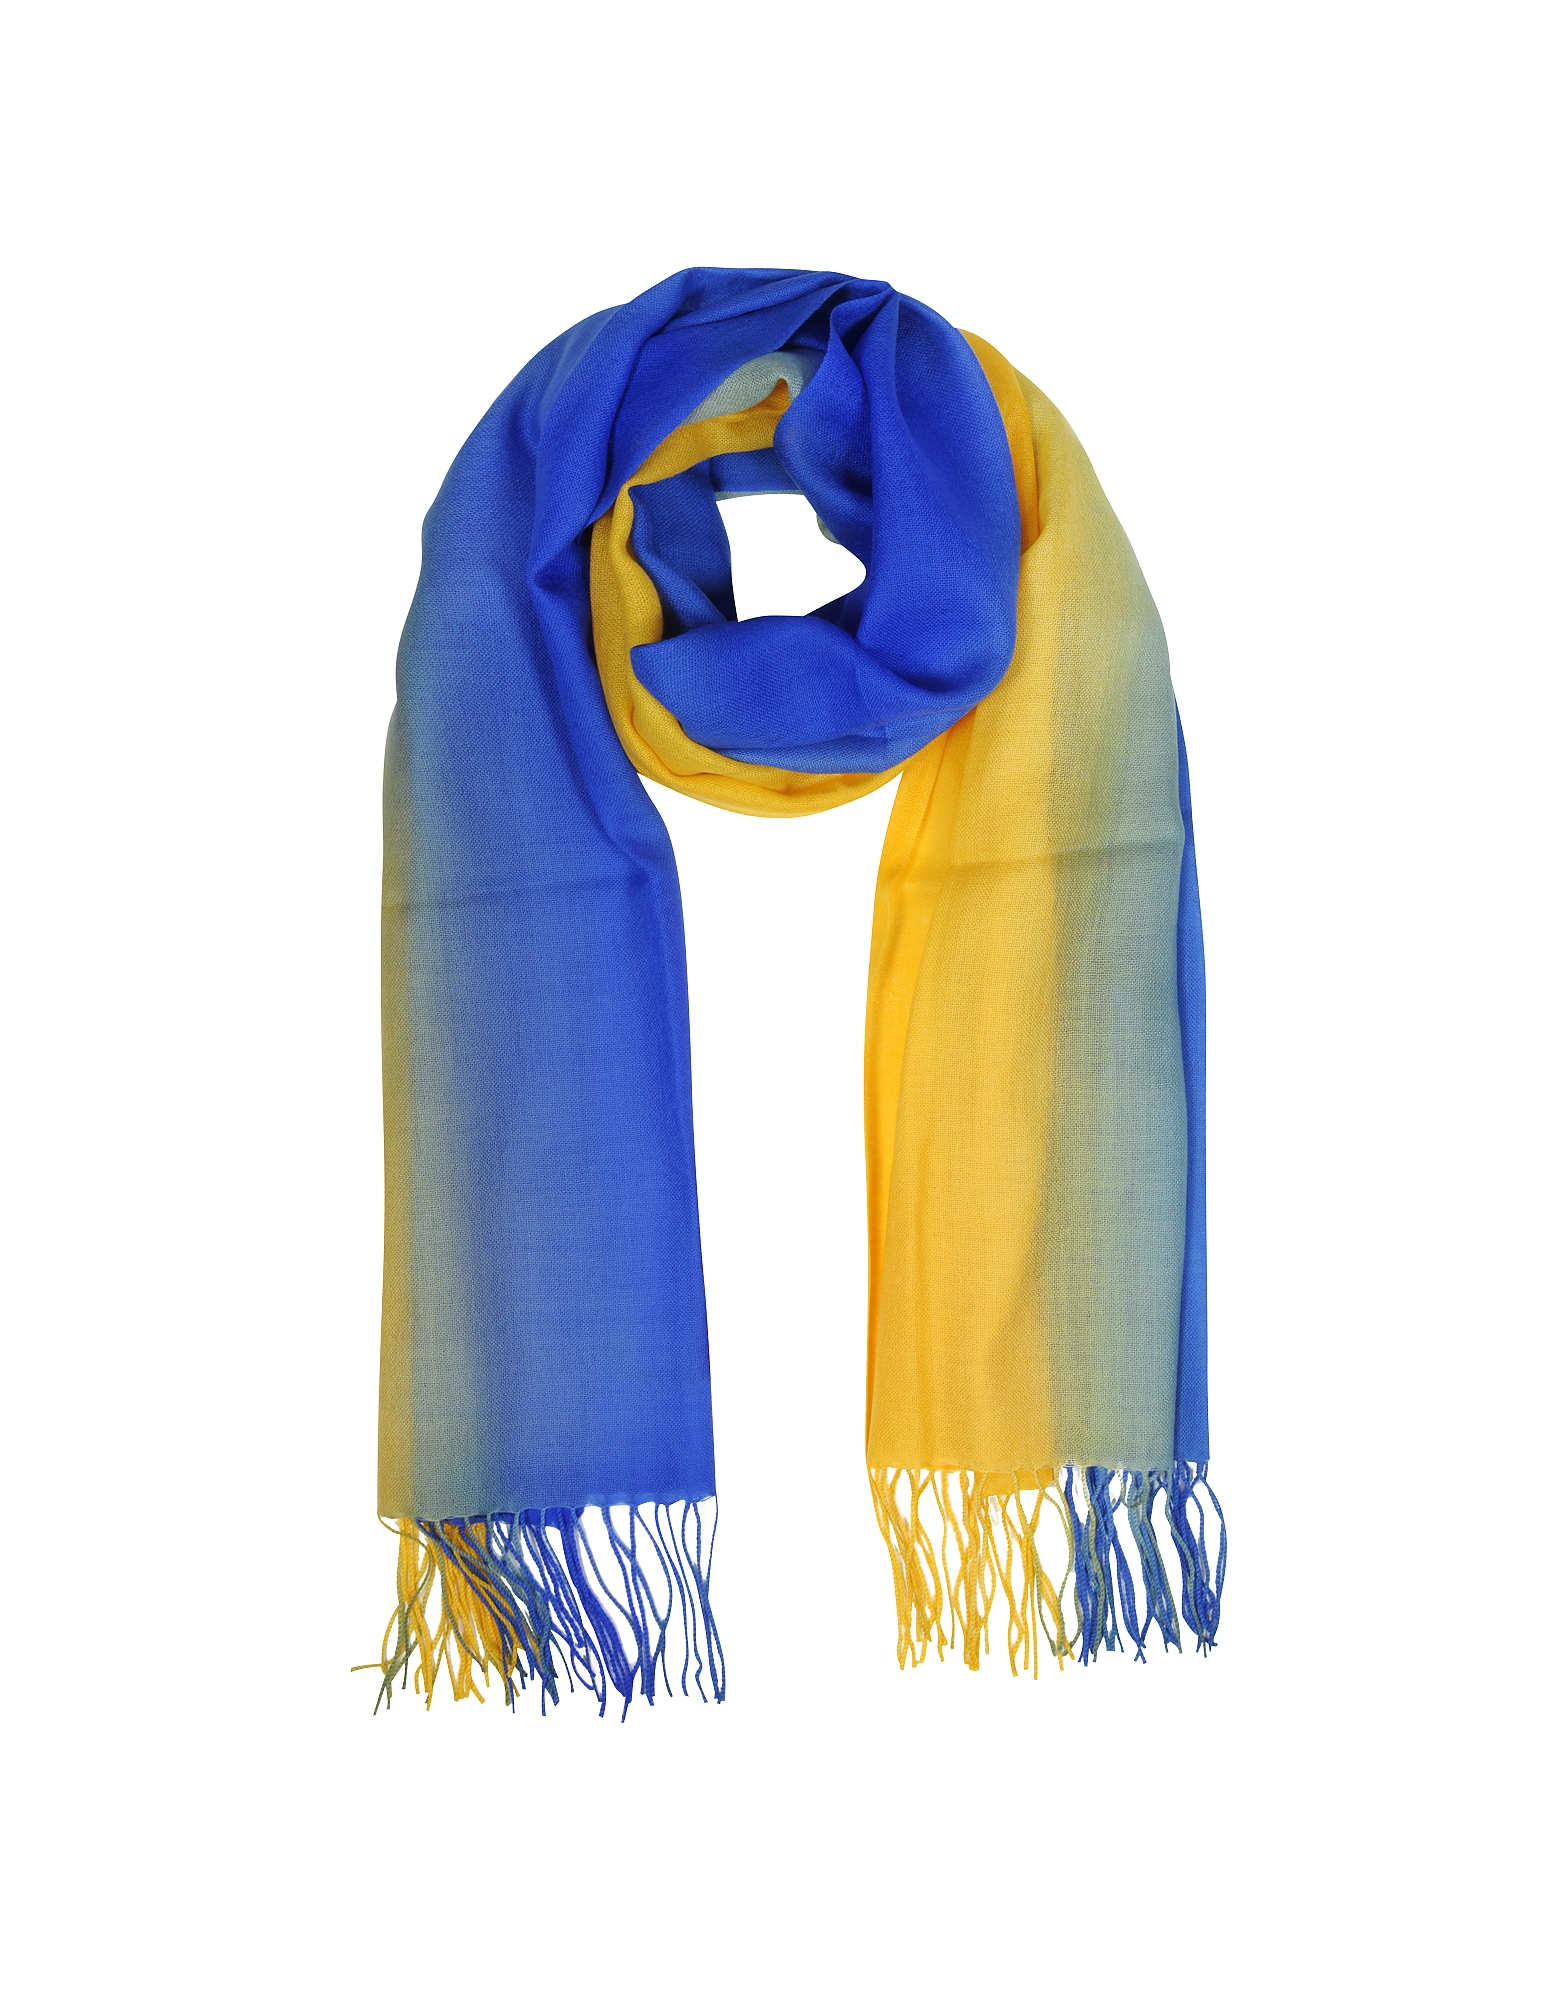 Mila Schon Scarves, Cashmere and Wool Fringed Stole